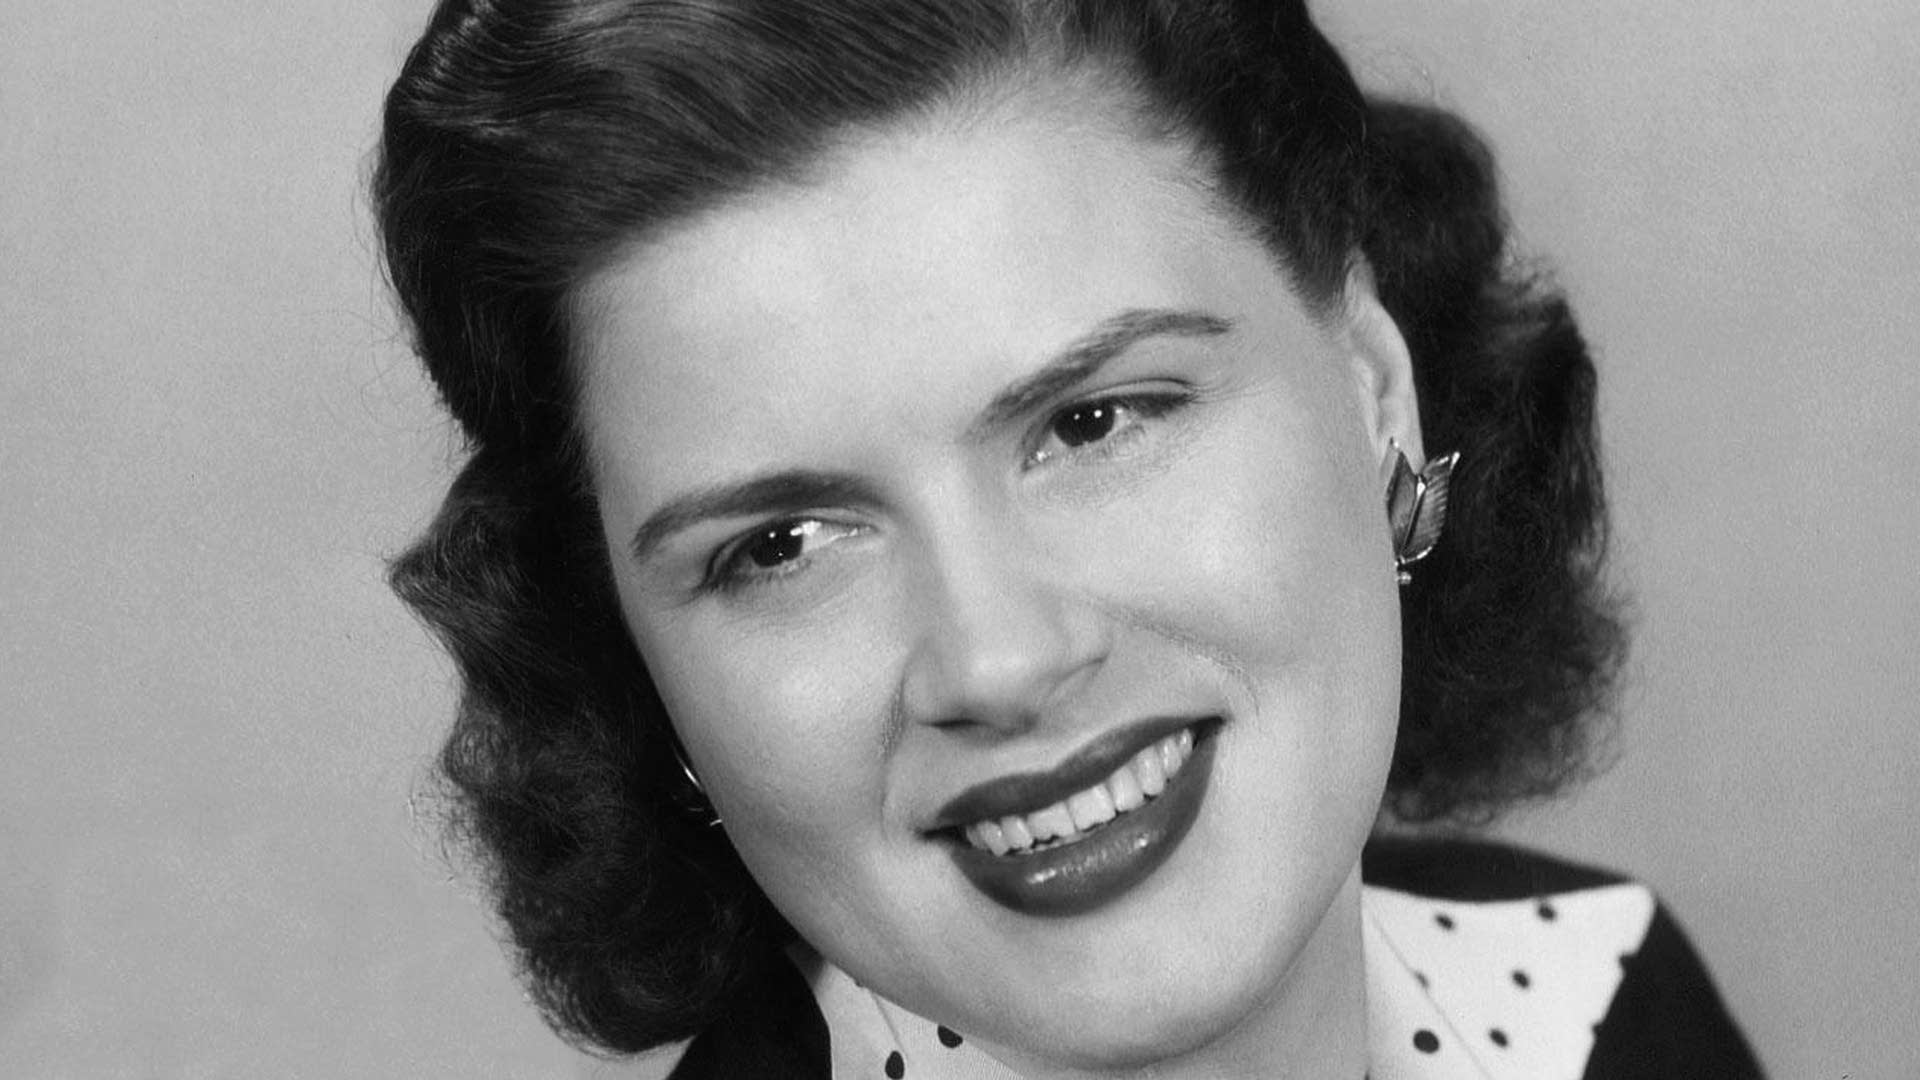 Today in Music History: Remembering Patsy Cline on her birthday